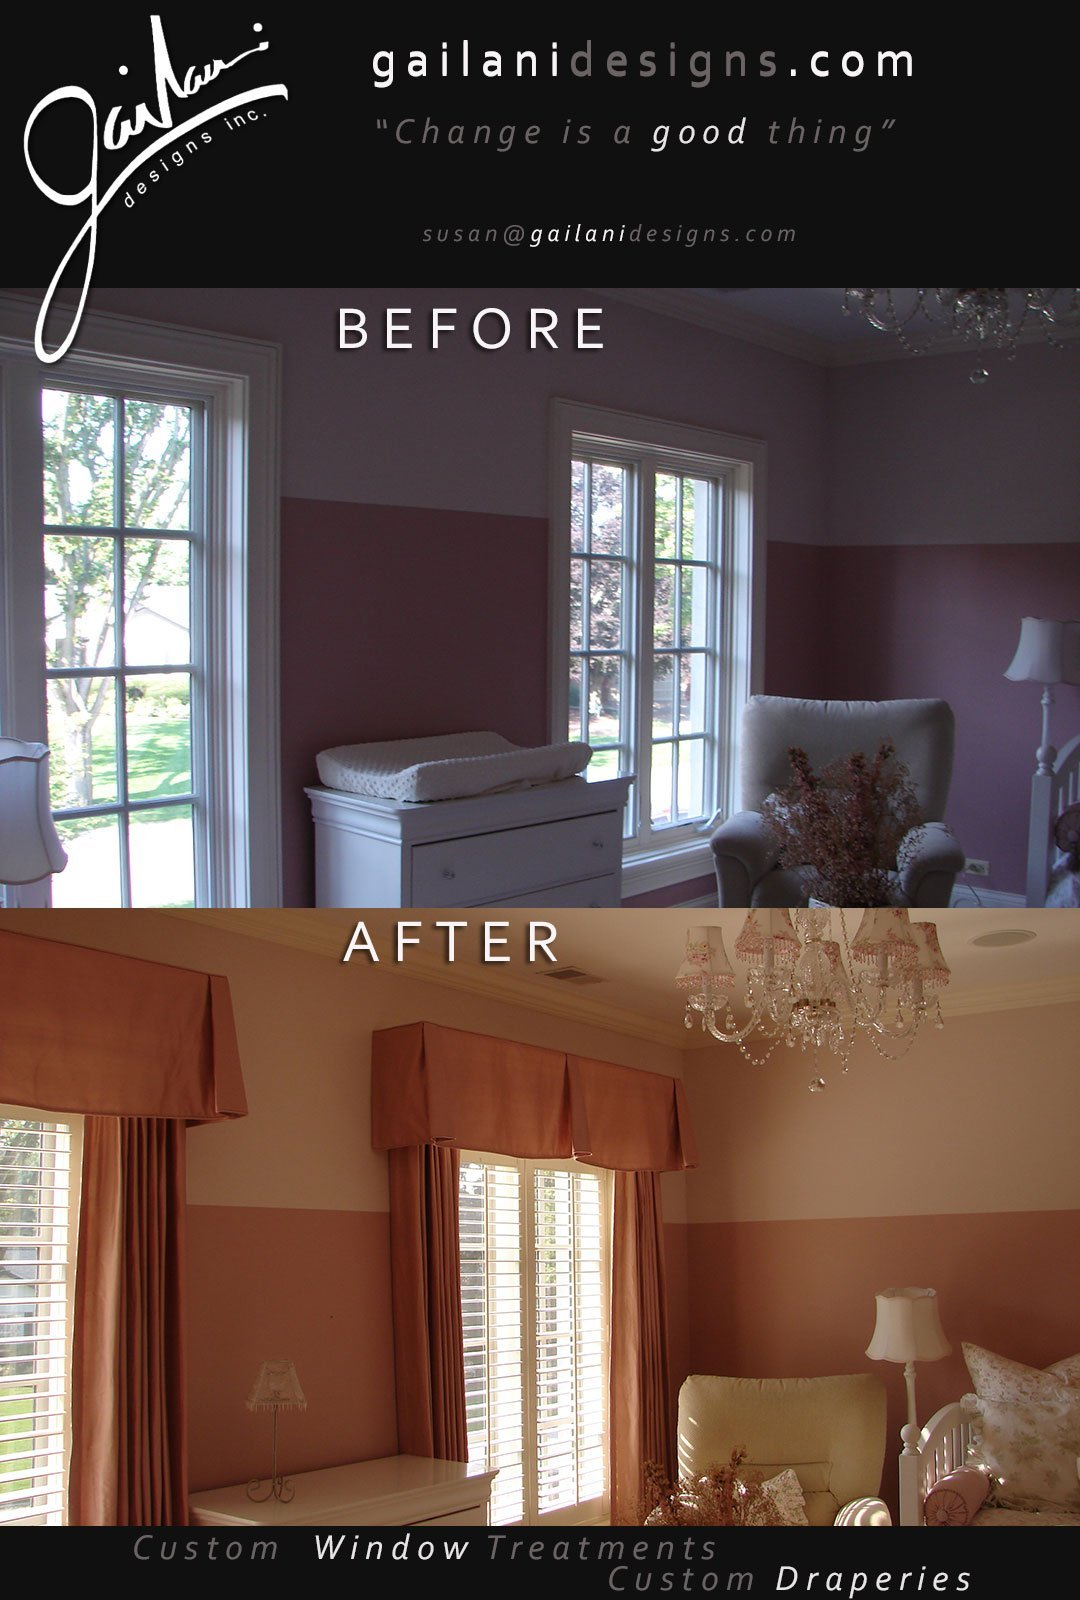 Gailani Designs - Before and After Custom Window Treatment v